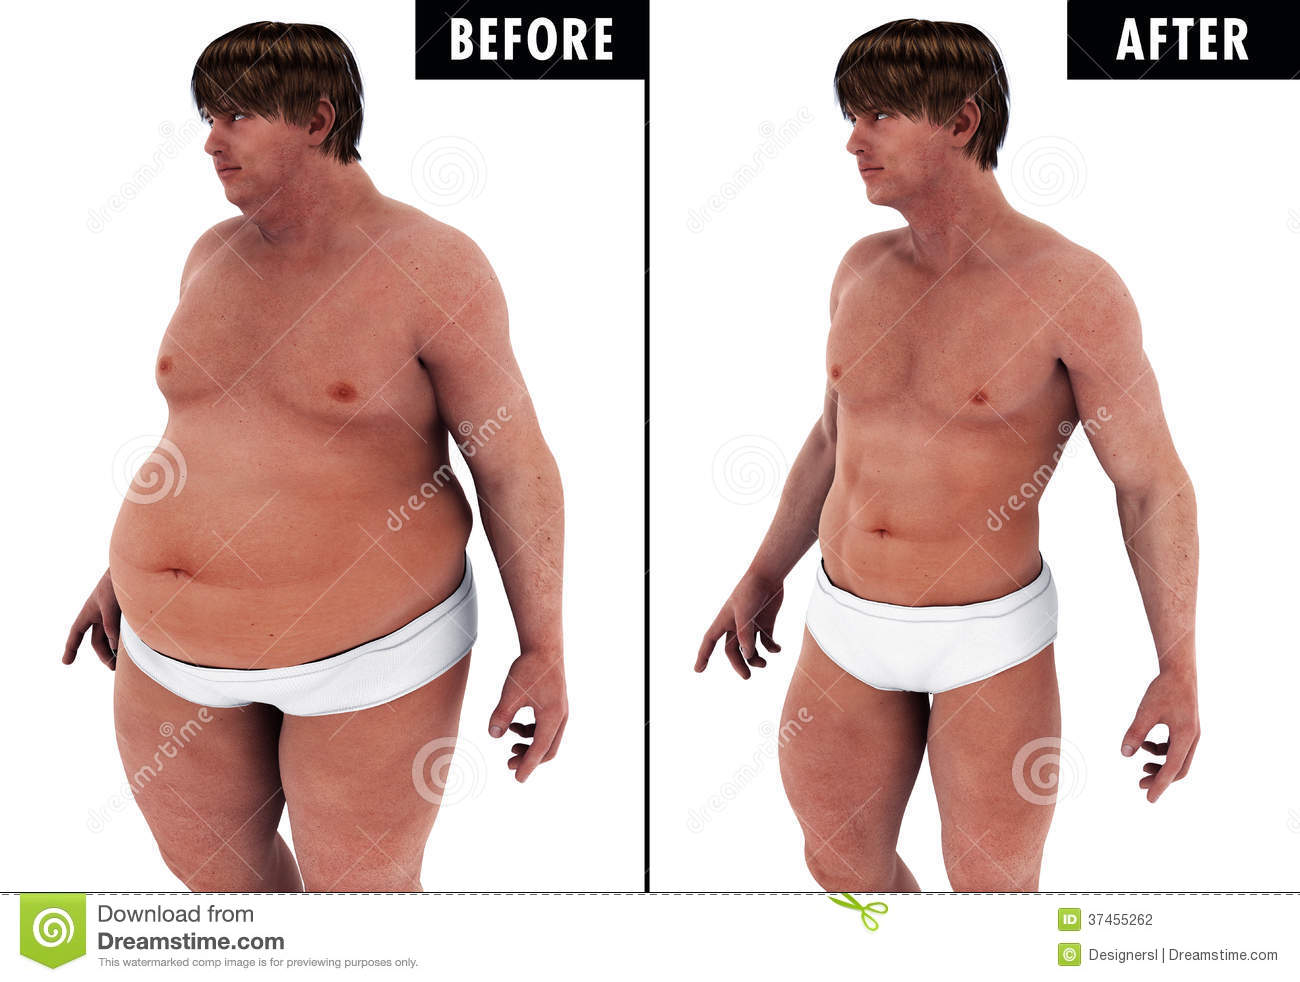 Excellent body transformations before and after